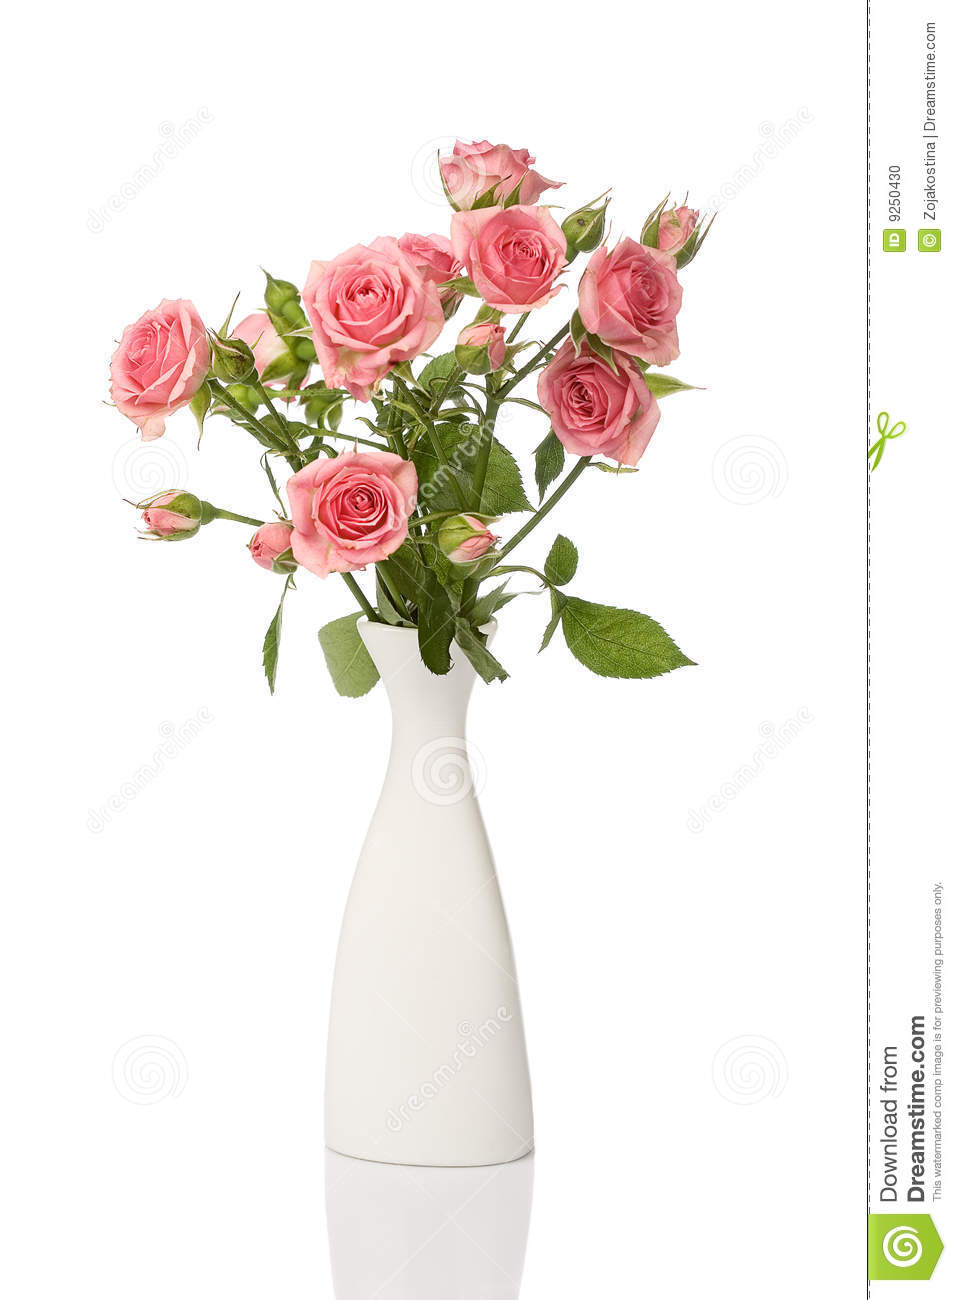 Vase with roses isolated on white